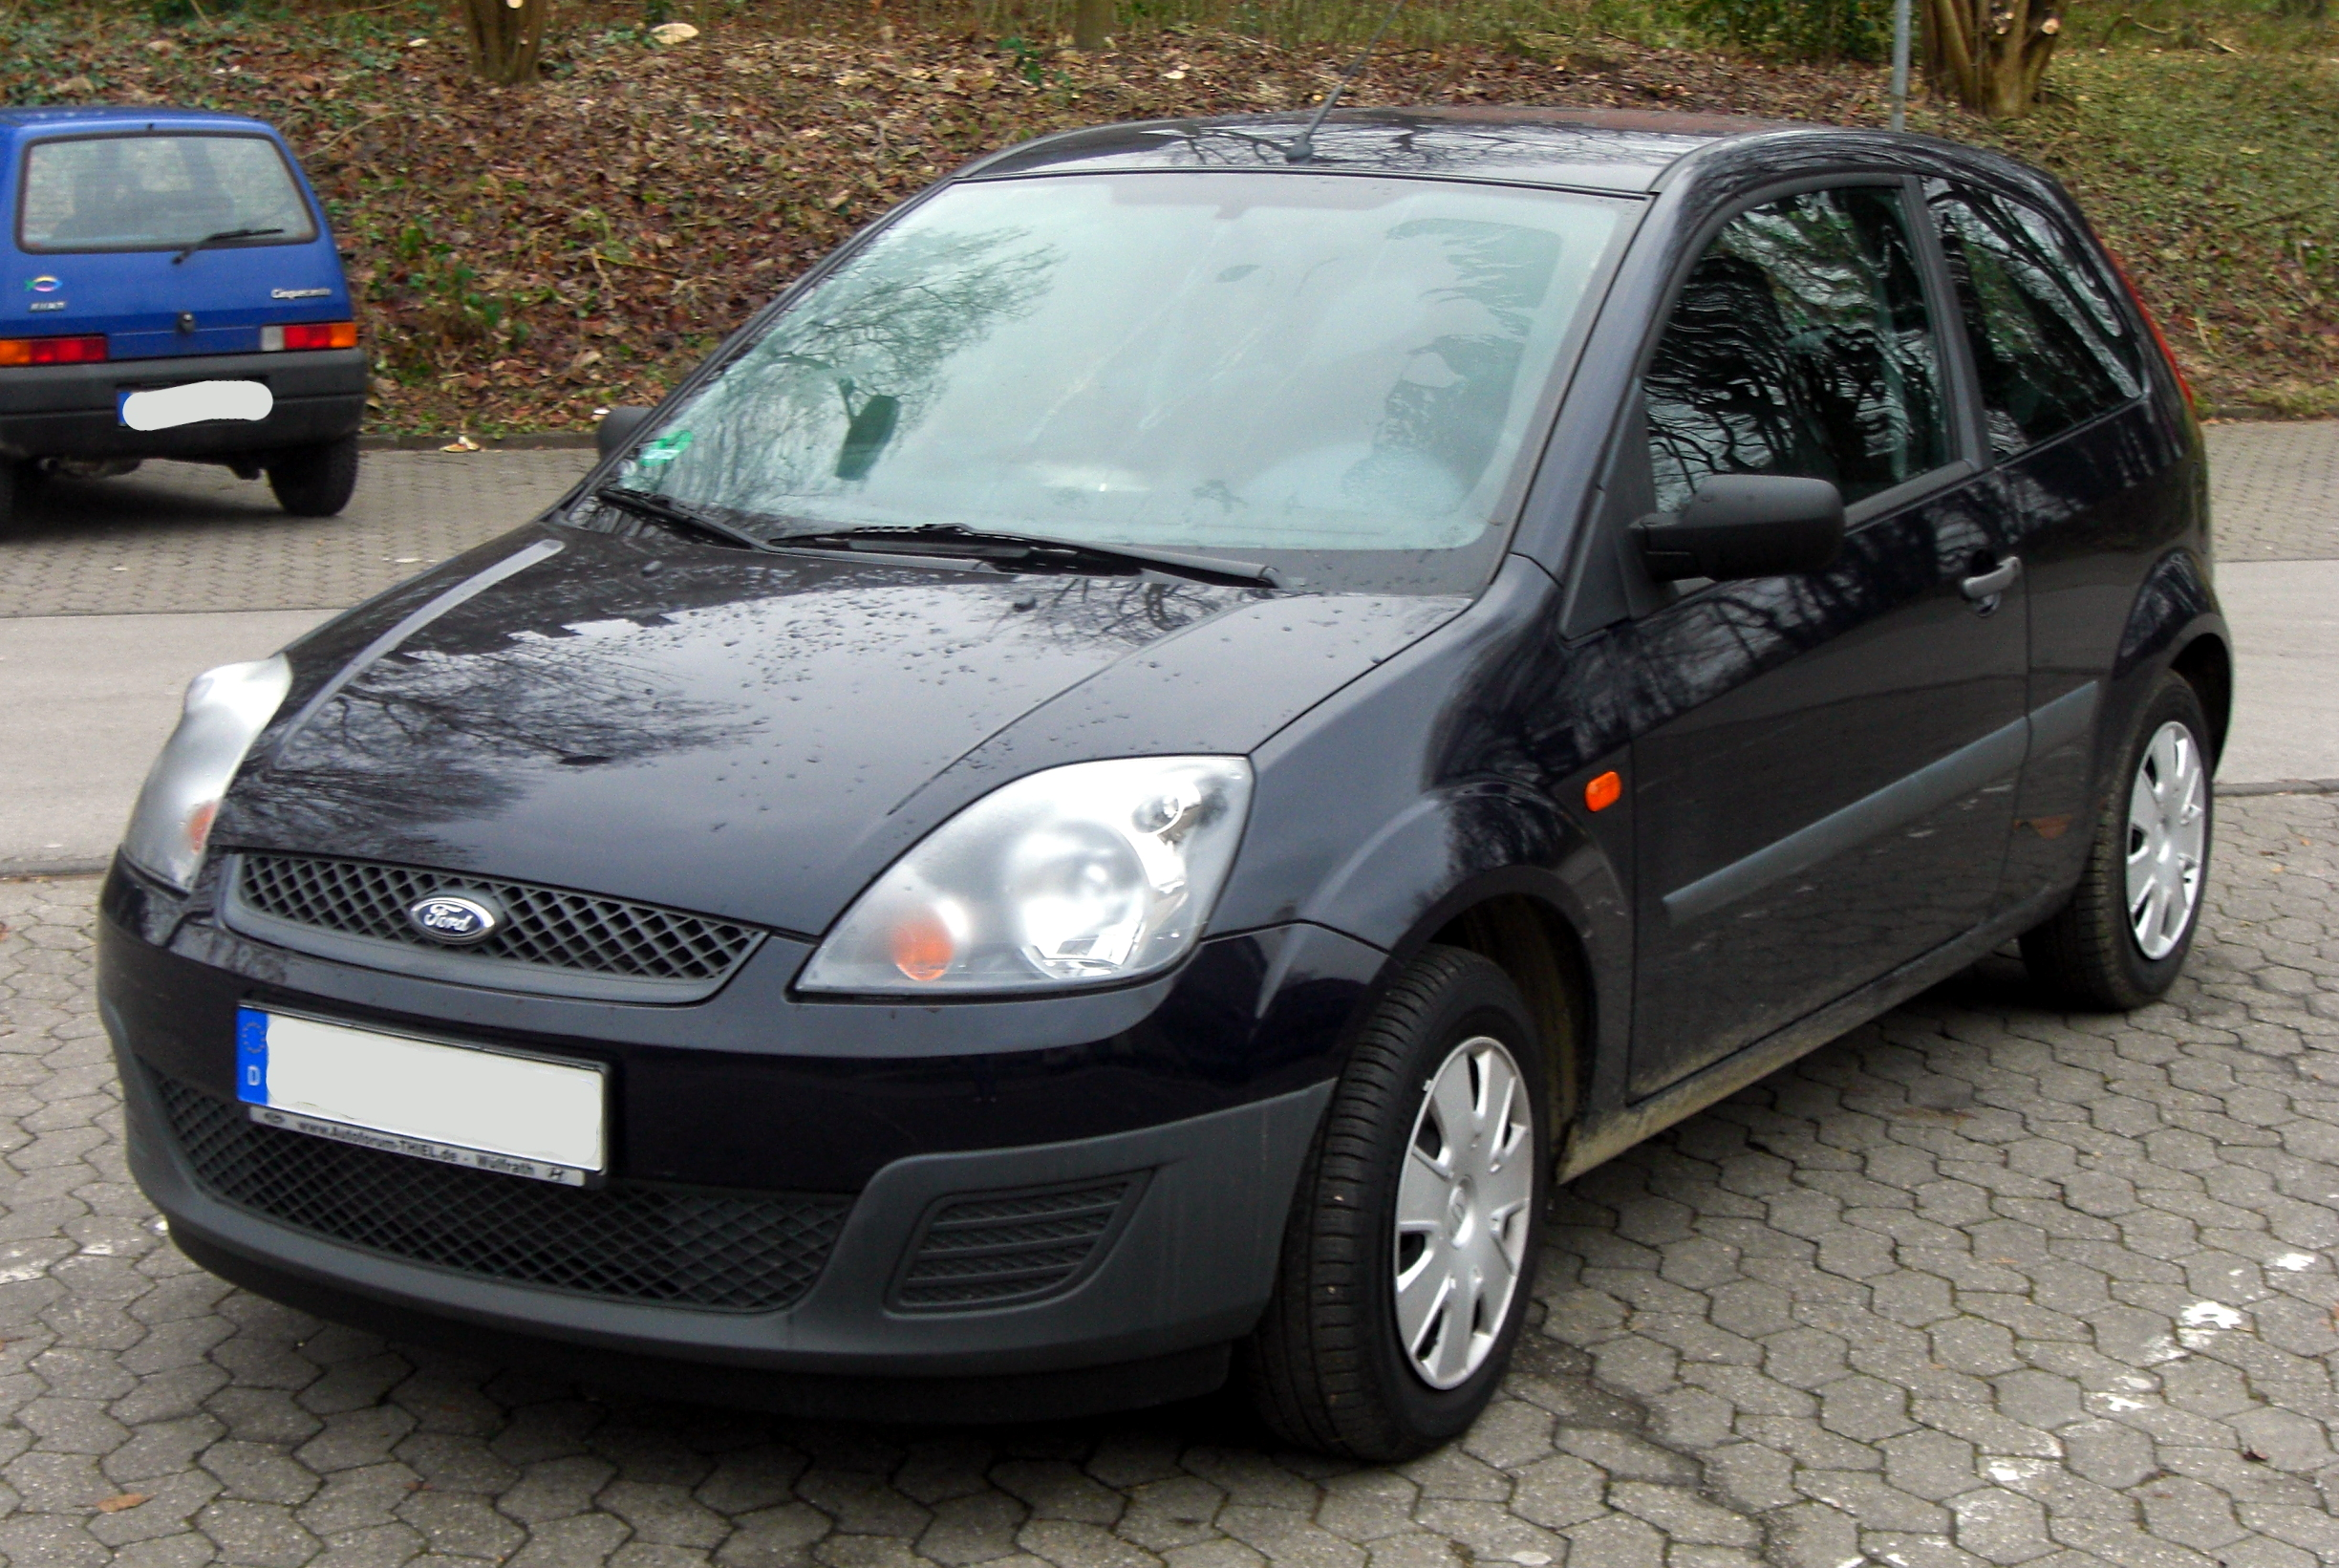 file ford fiesta mk6 facelift 2005 2008 front mj jpg wikimedia commons. Black Bedroom Furniture Sets. Home Design Ideas